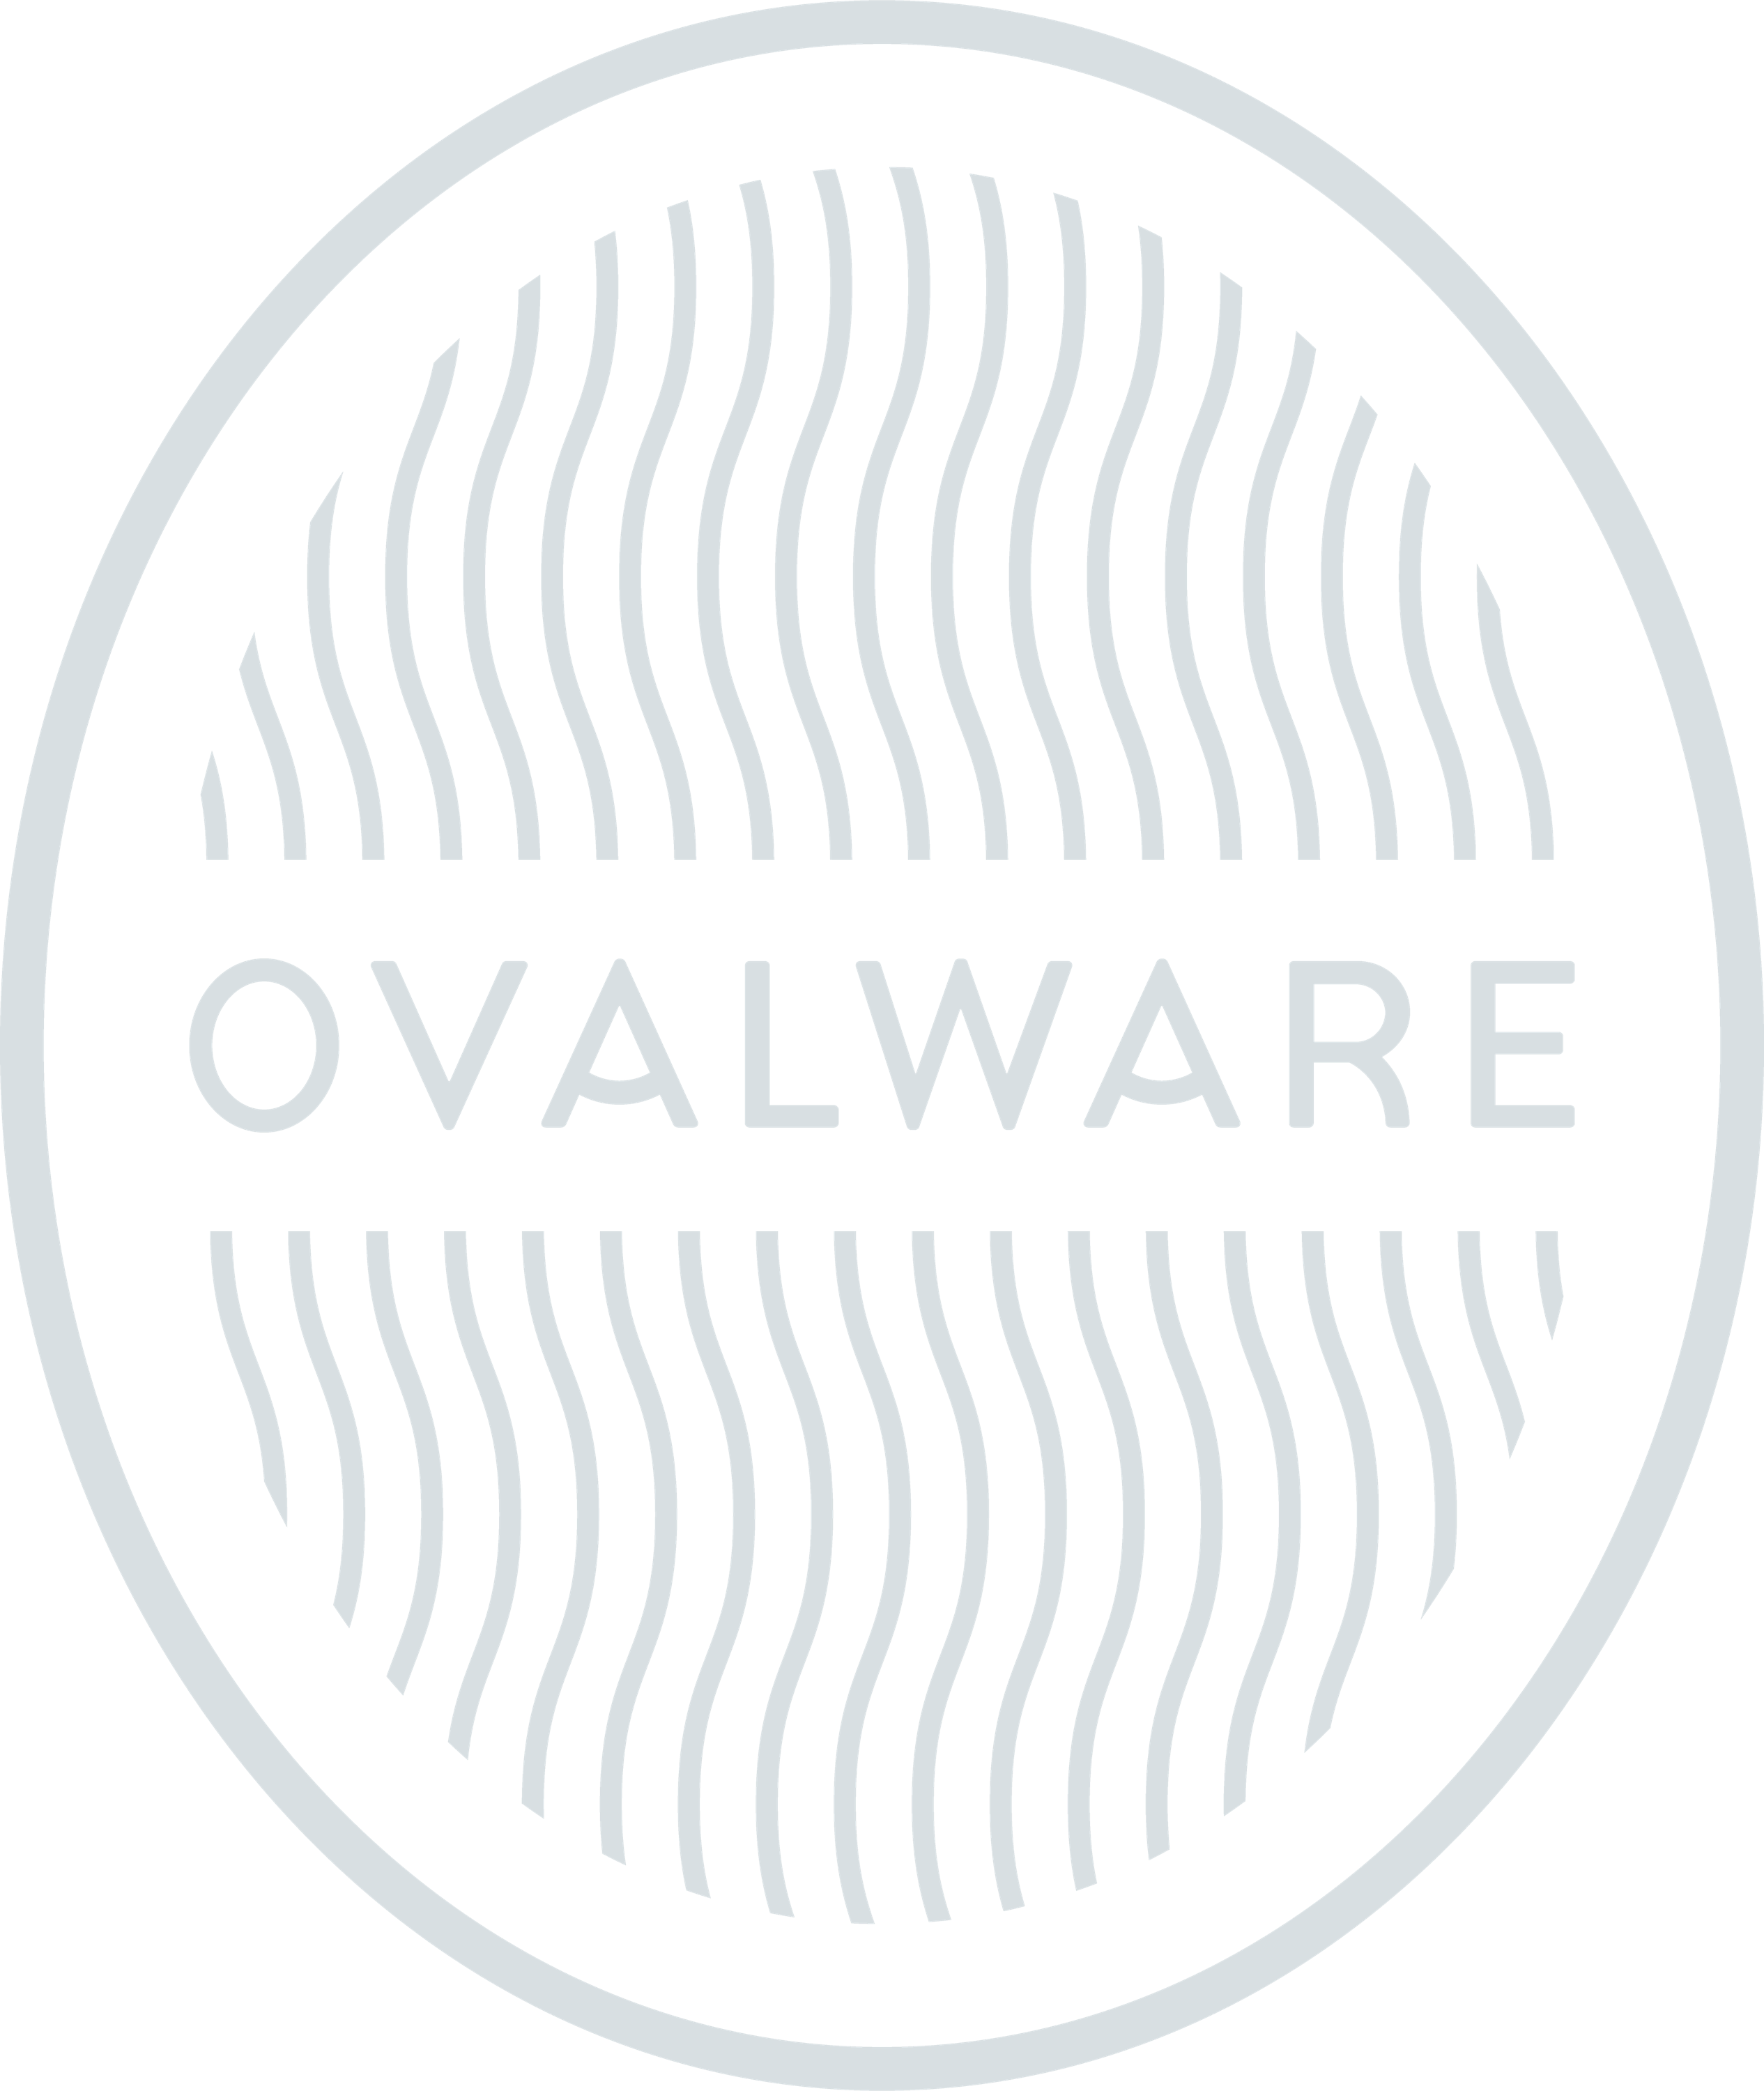 Ovalware specialty coffee equipment provides premium coffee brewing tools needed by all coffee loves, baristas, coffee shop owners. Enjoy your home brewing ritual, explore infinite possible flavors and eventually, your unique personal path. Cheers.